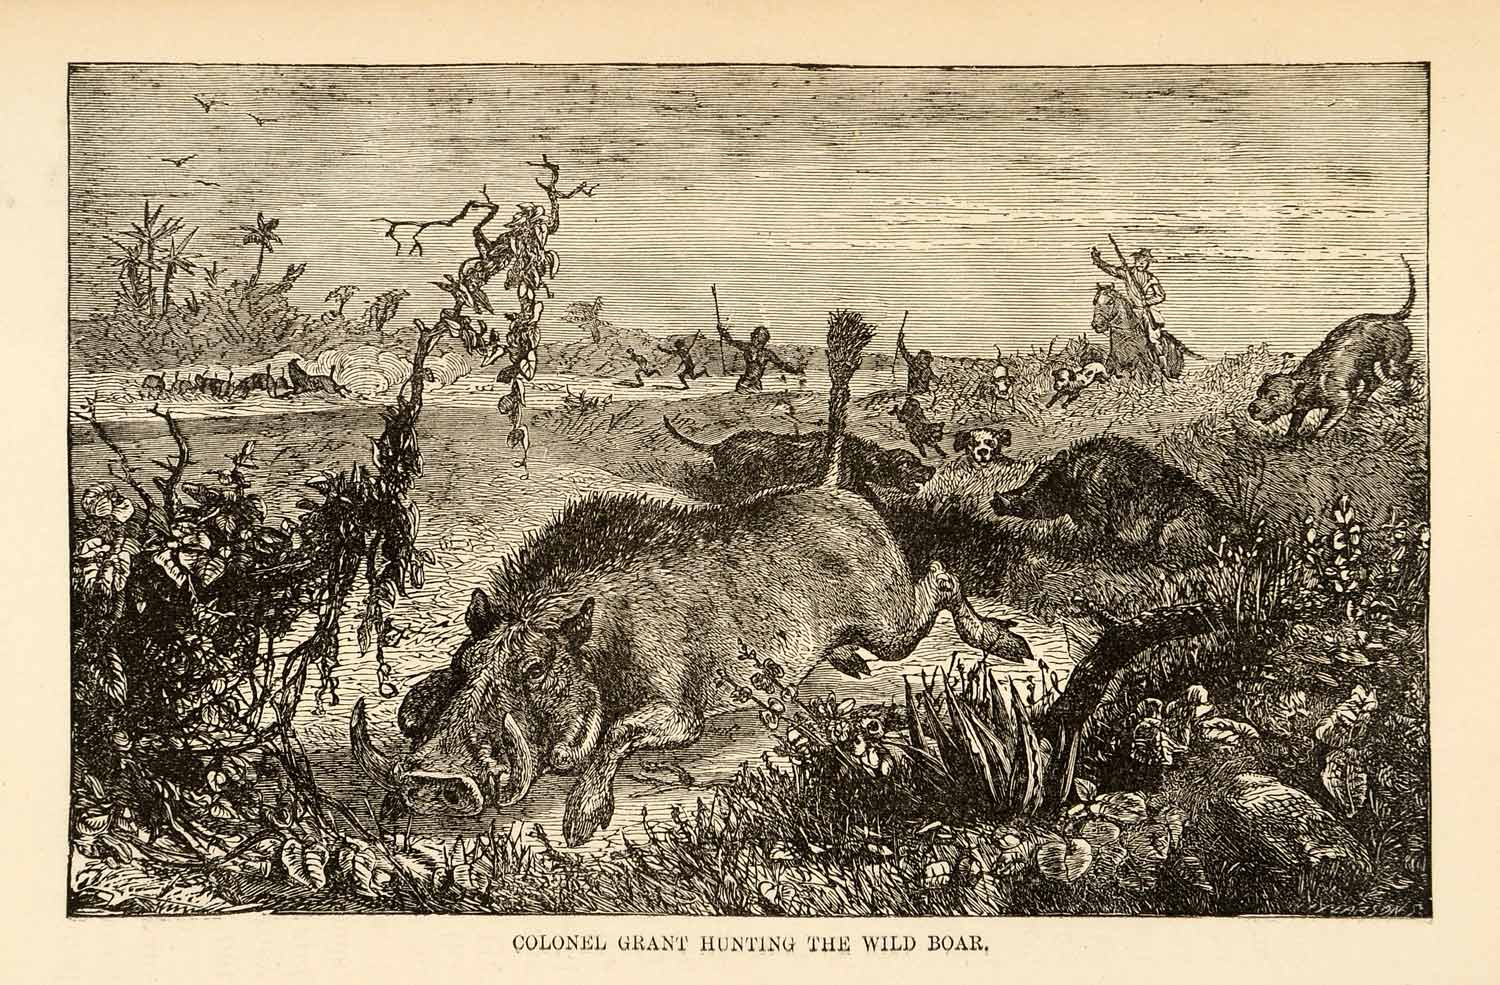 Engraving Wild Boar Hunting Guns Ulysses Grant Dogs Spear India Horse